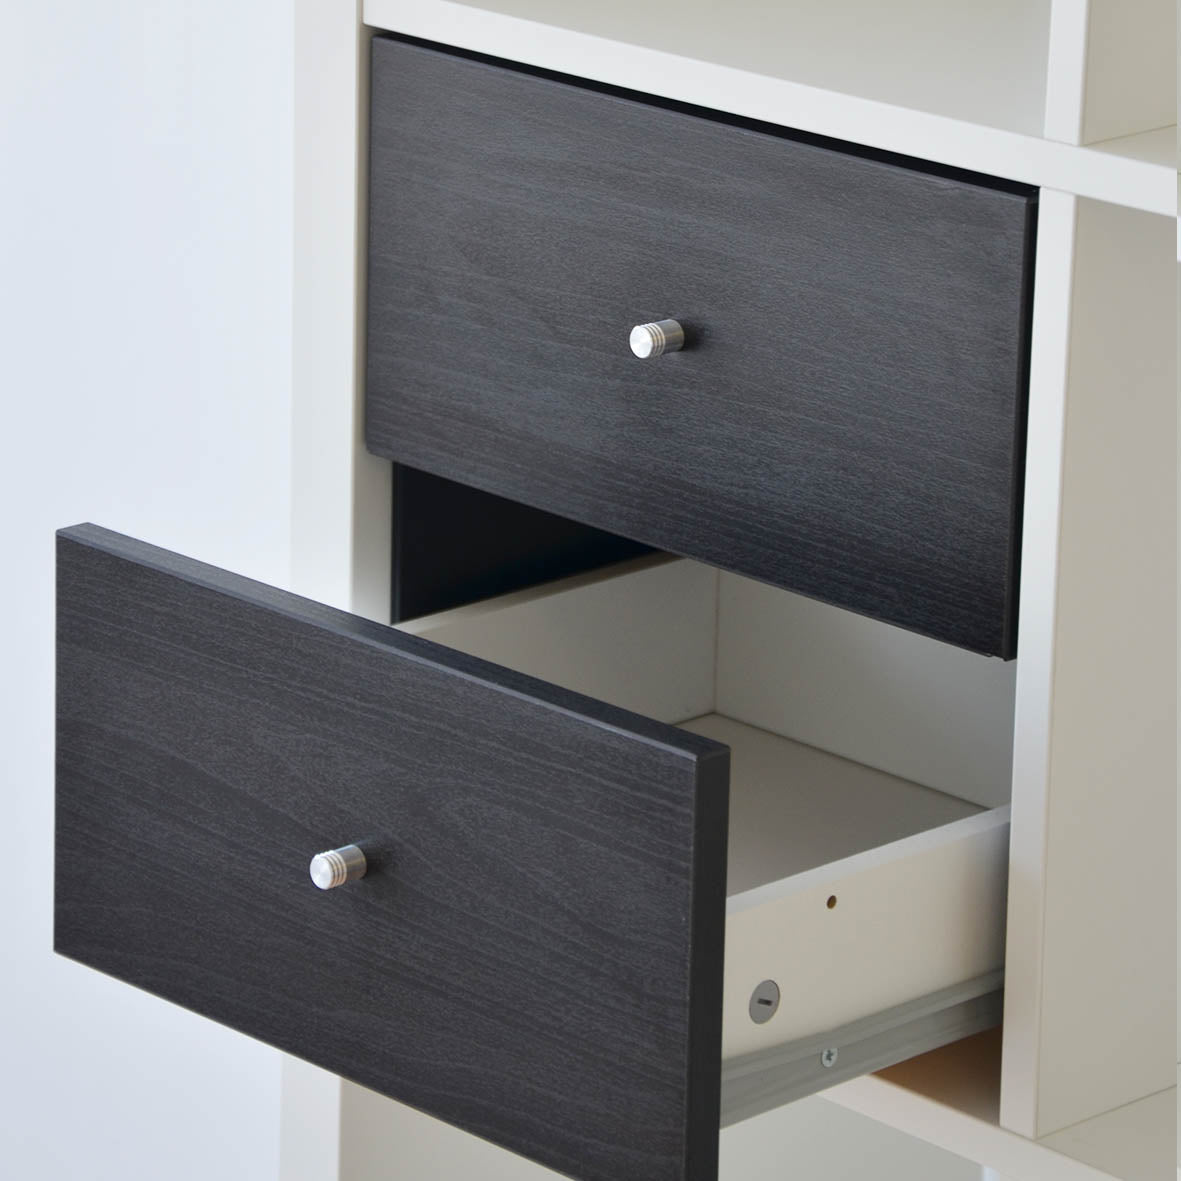 IKEA Kallax Insert with 2 Drawers, Black/Brown